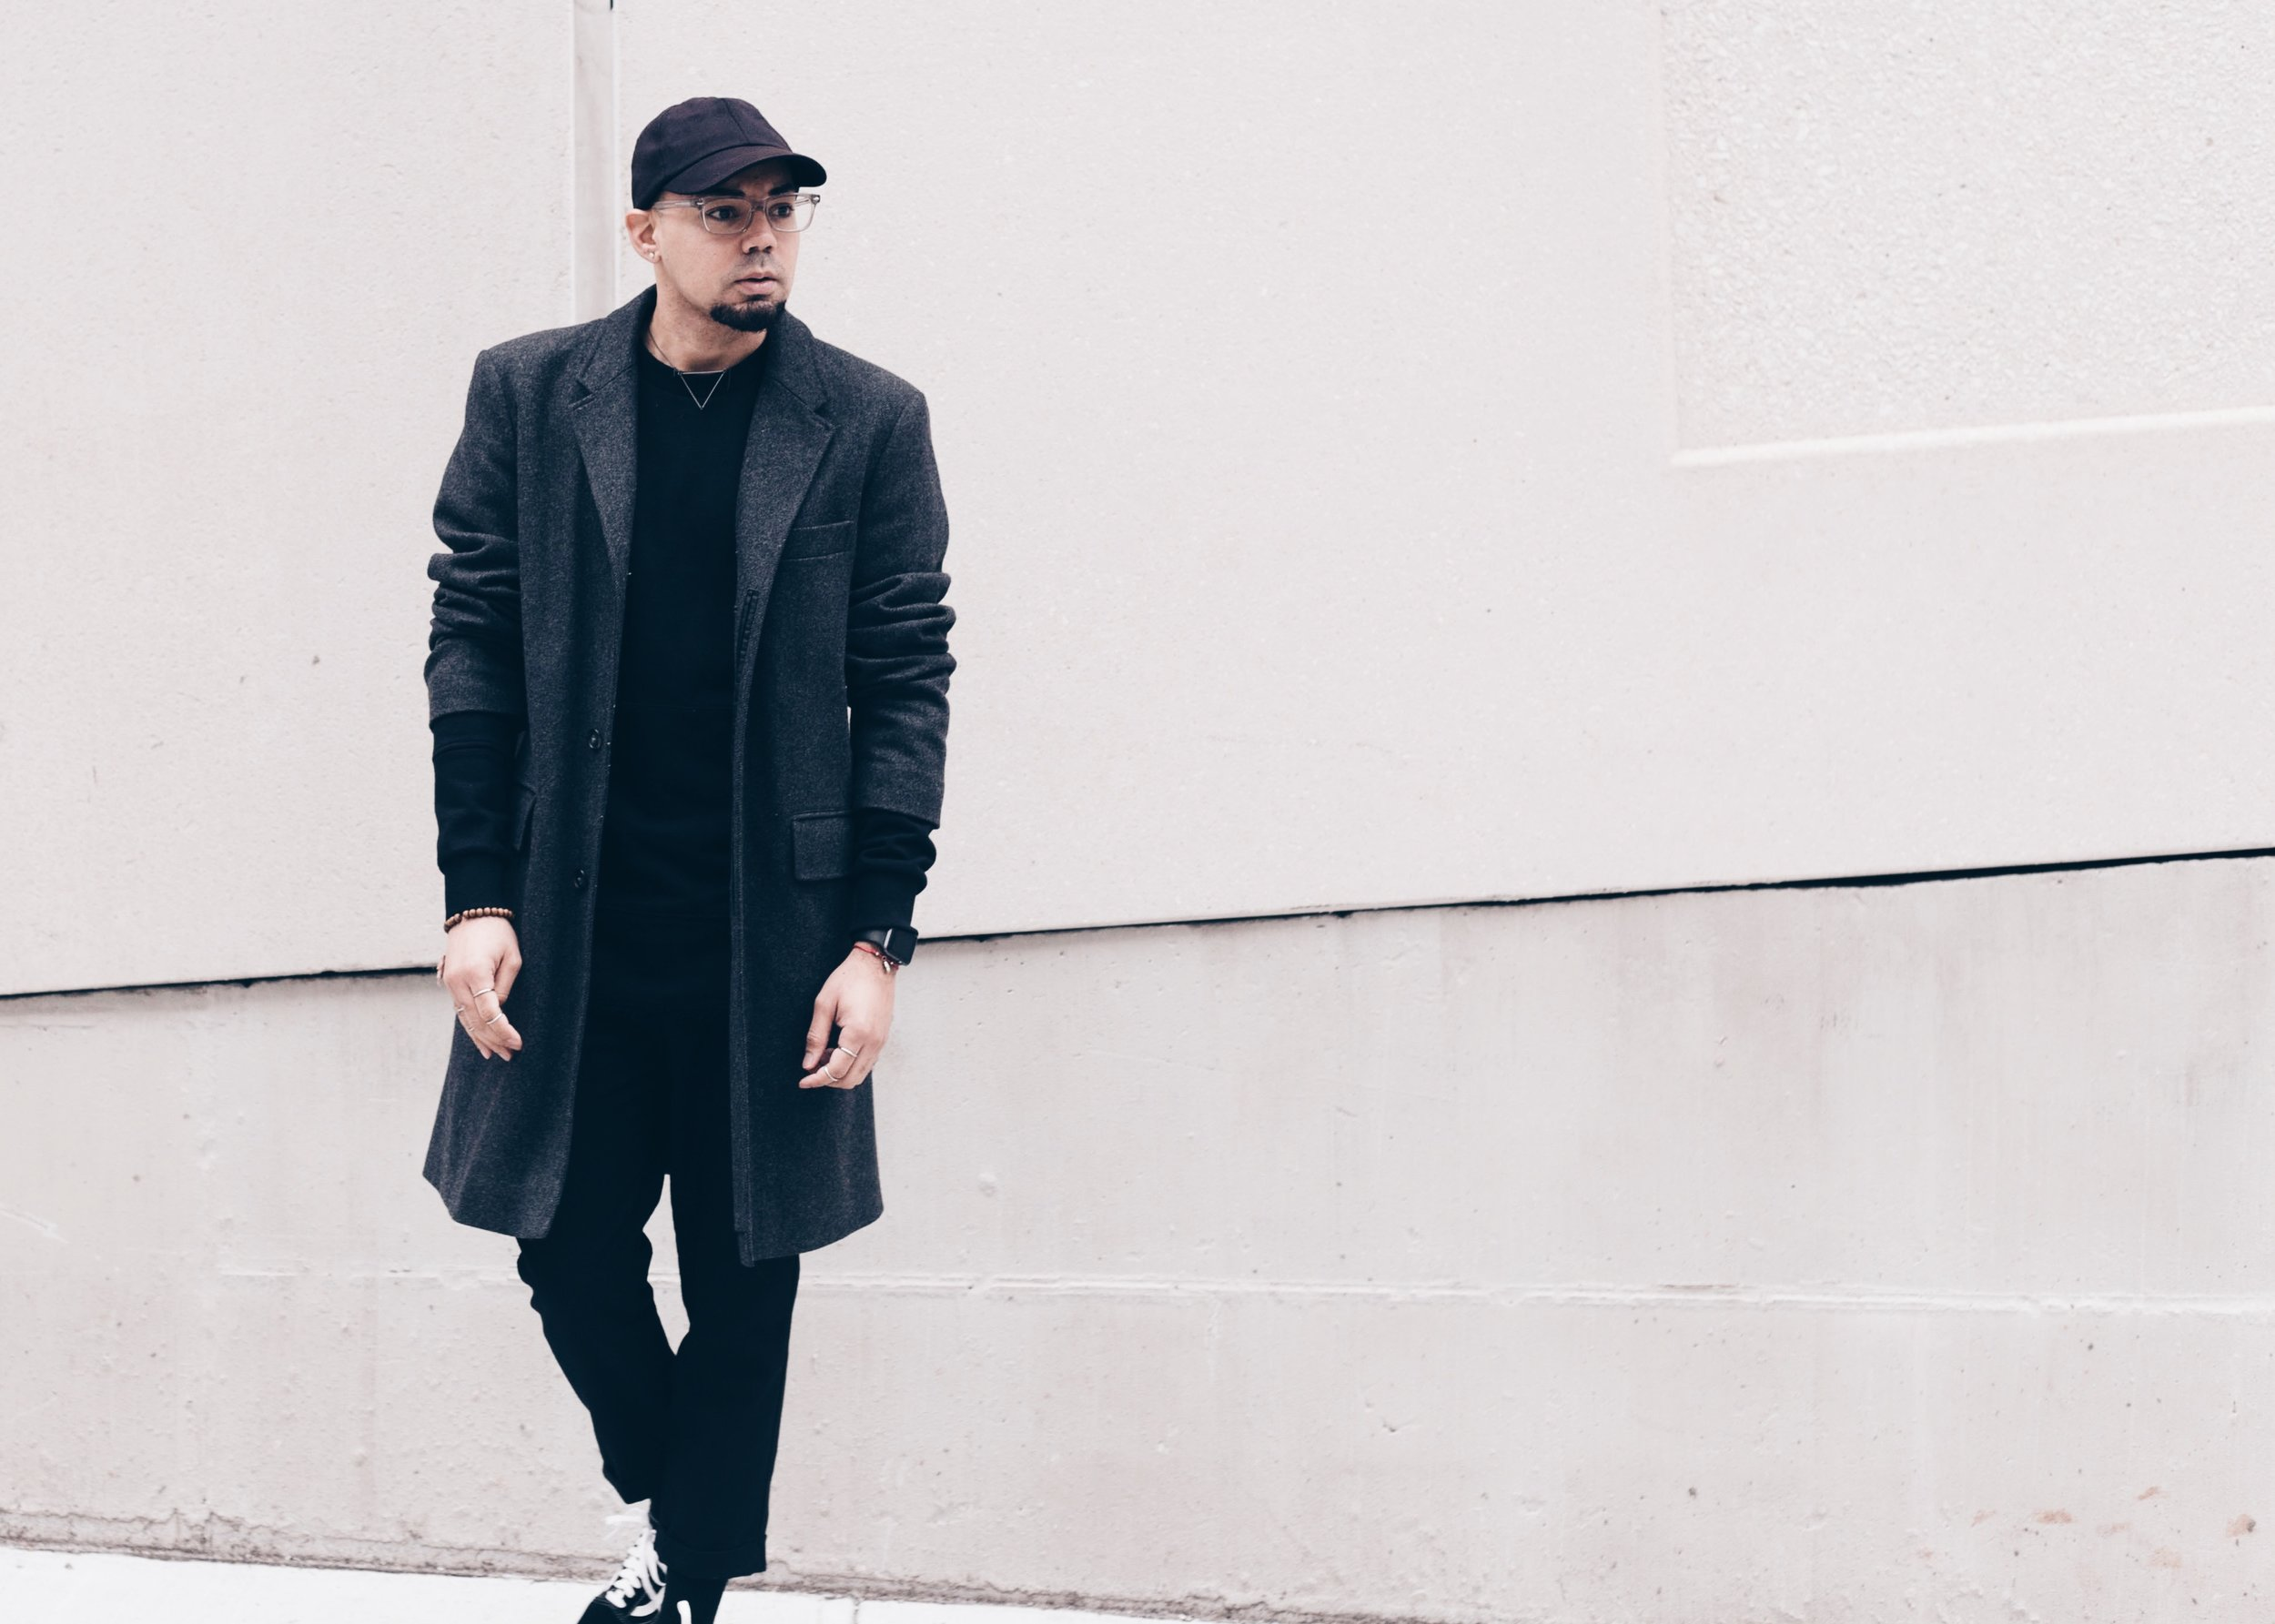 sam-c-perry-all-black-distressed-sweater-oversized-overcoat-full.jpg